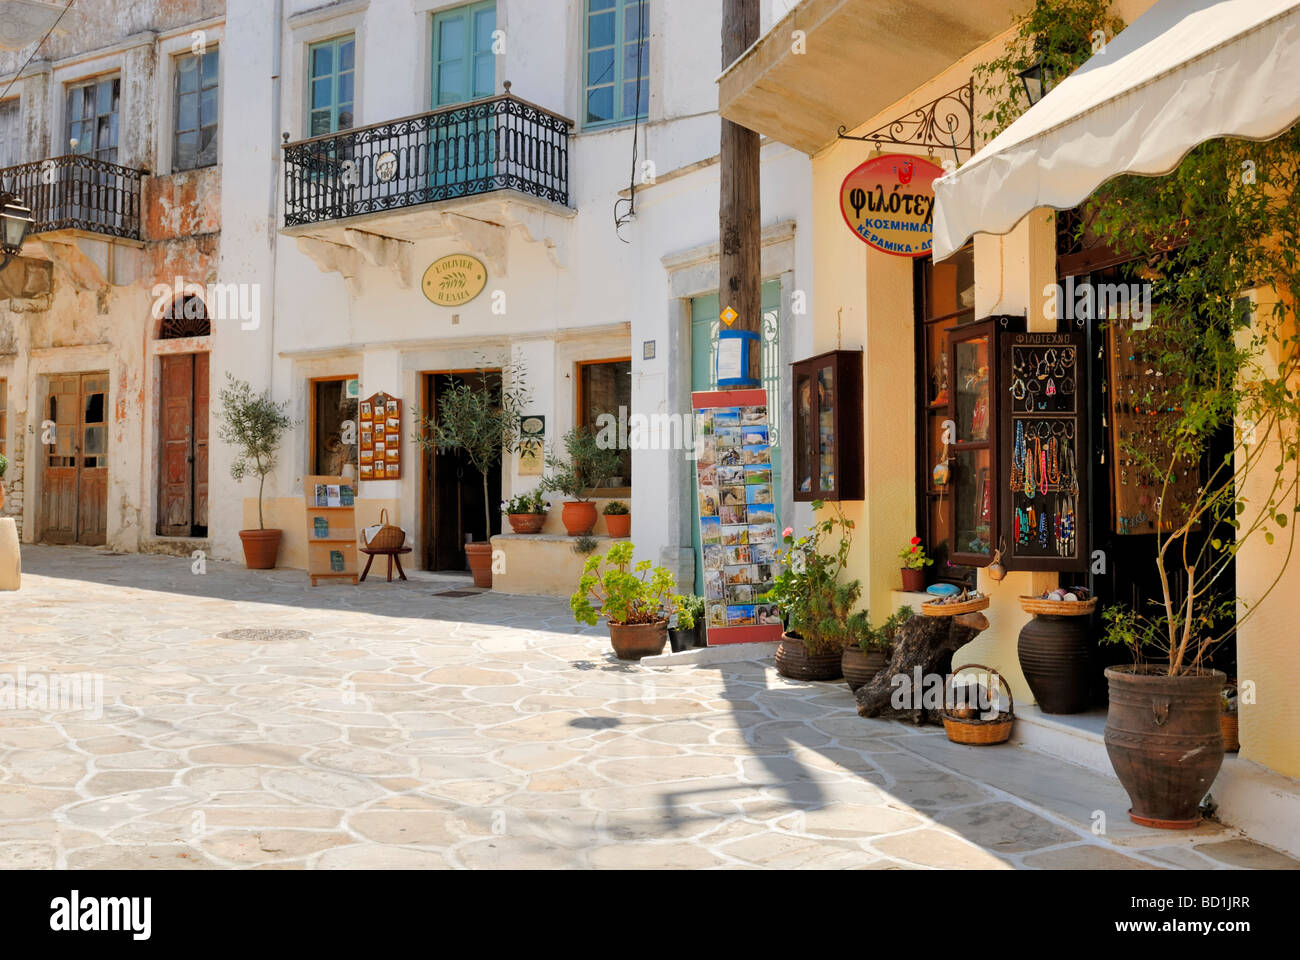 A fine view to the beautiful little square at the heart of the small historic village of Halki. Halki, Tragaea, - Stock Image